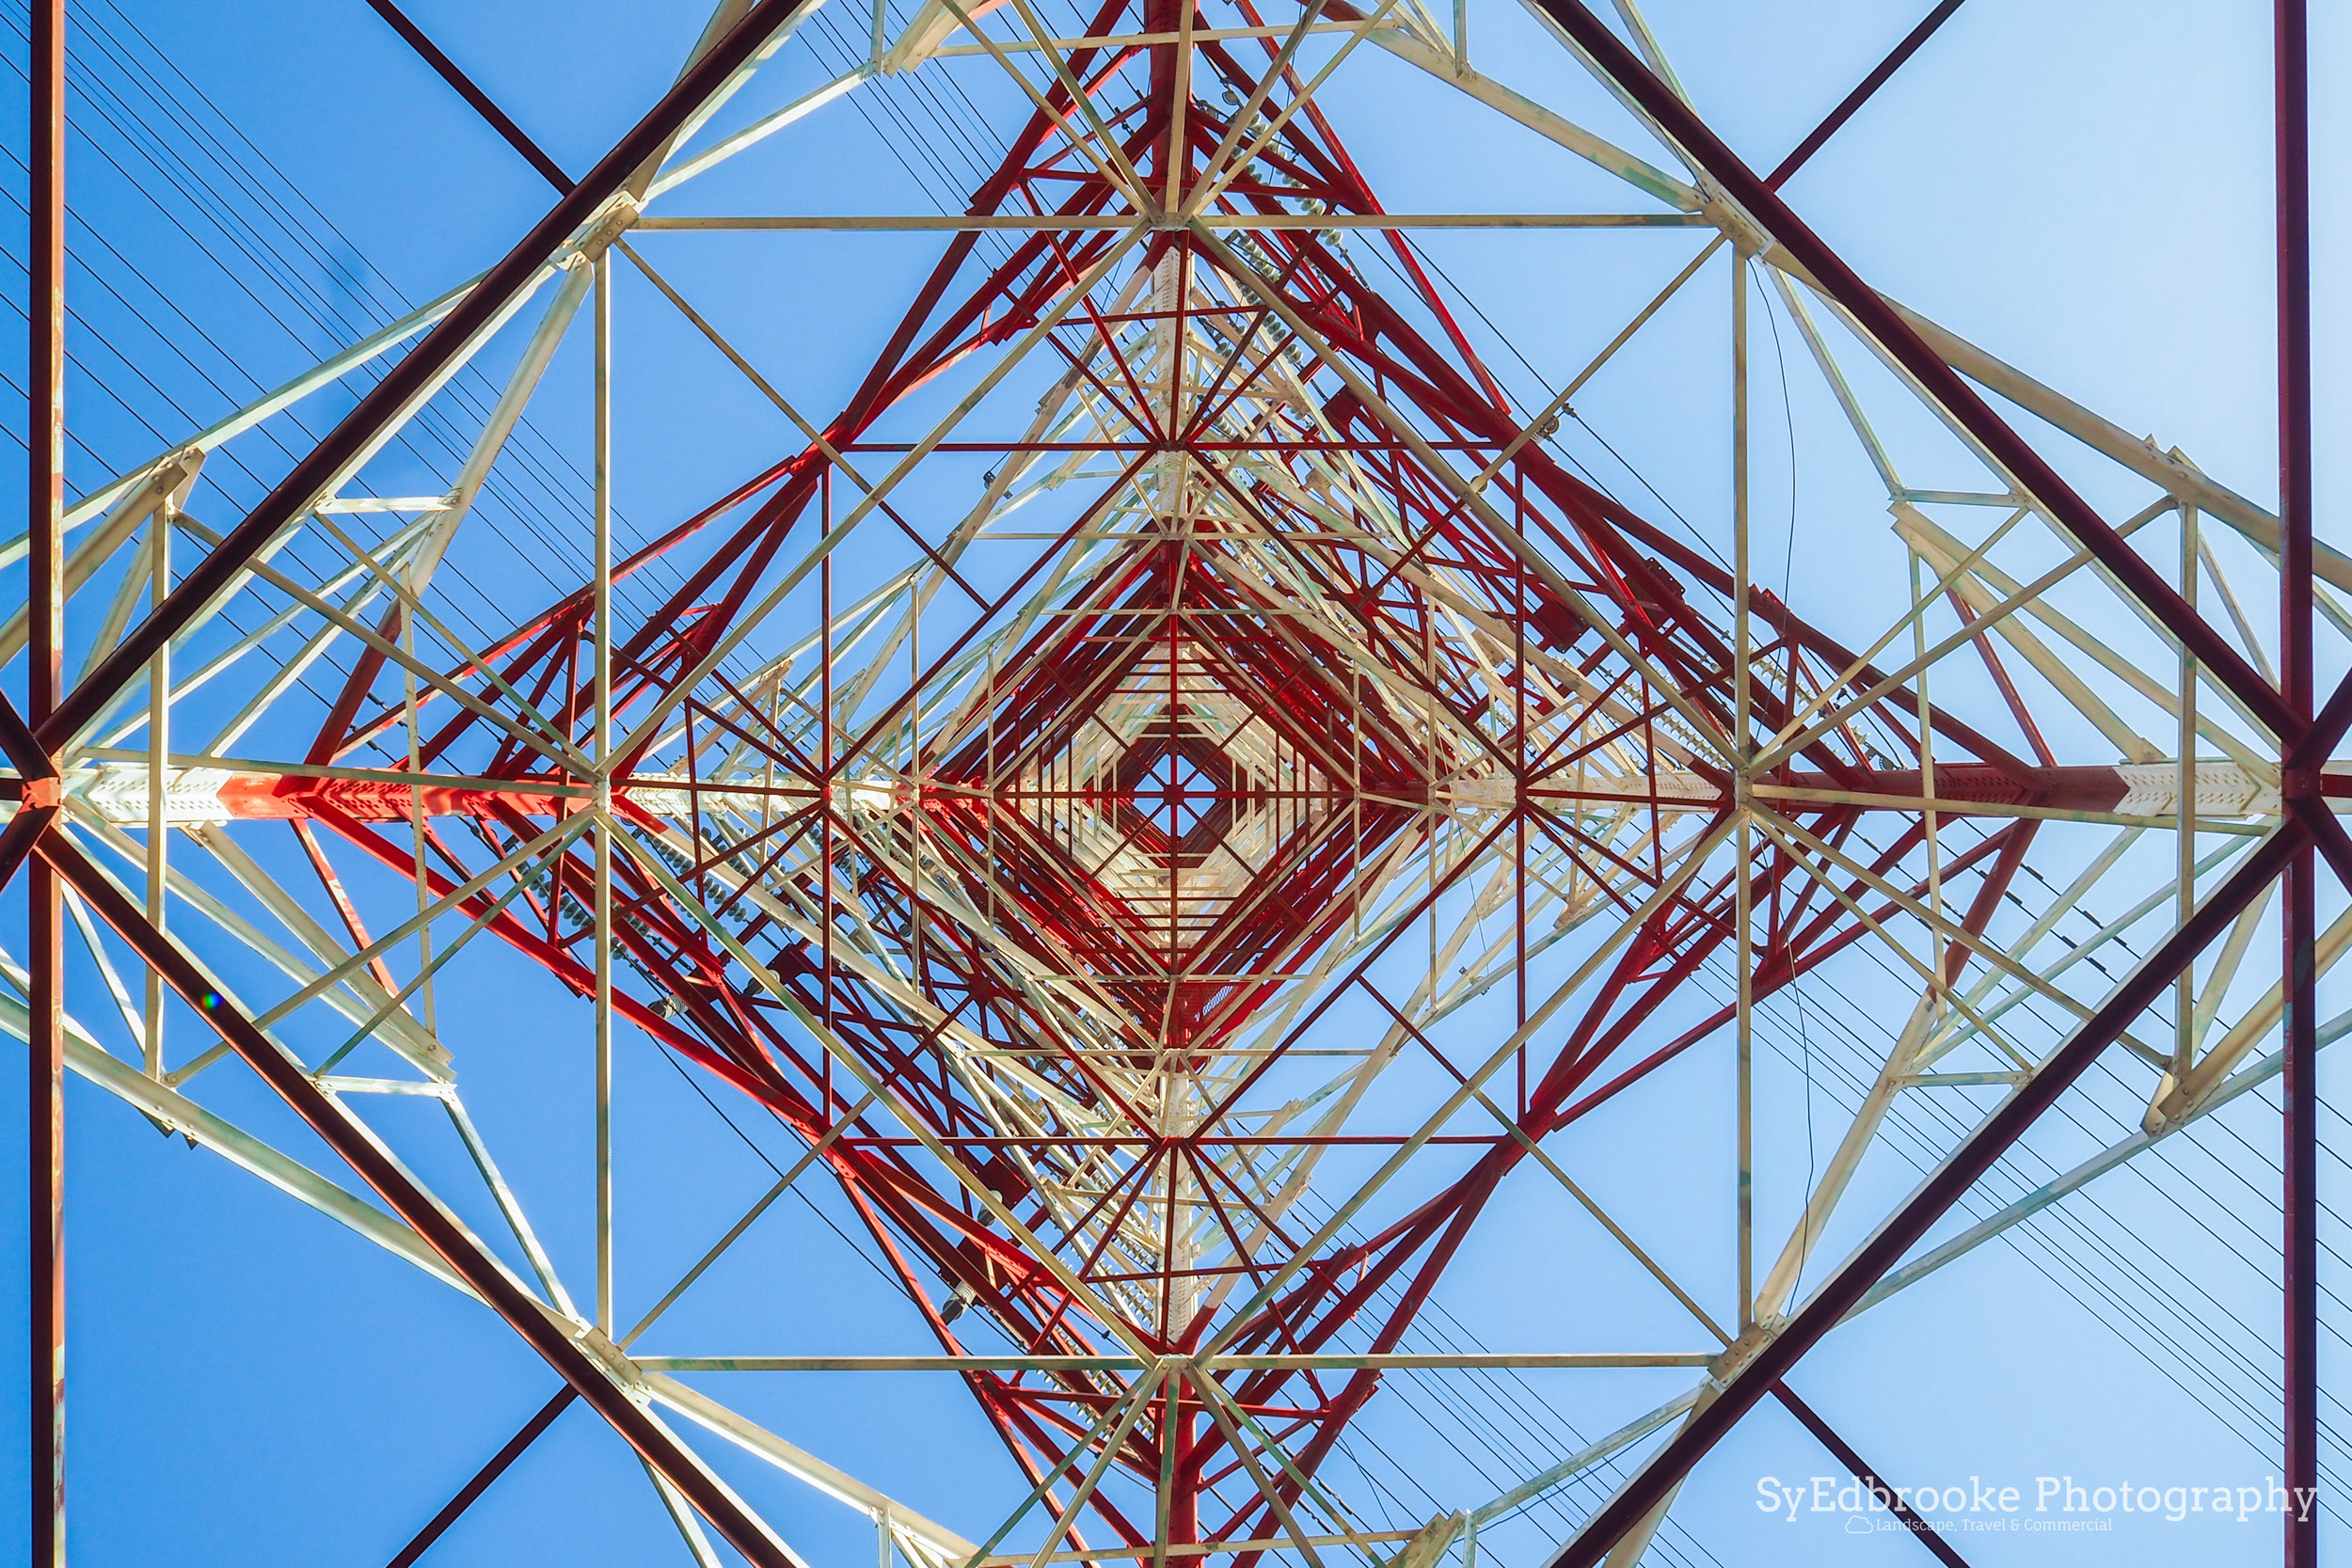 looking up at the pylon. f16, ISO 200, 1/20, 35mm